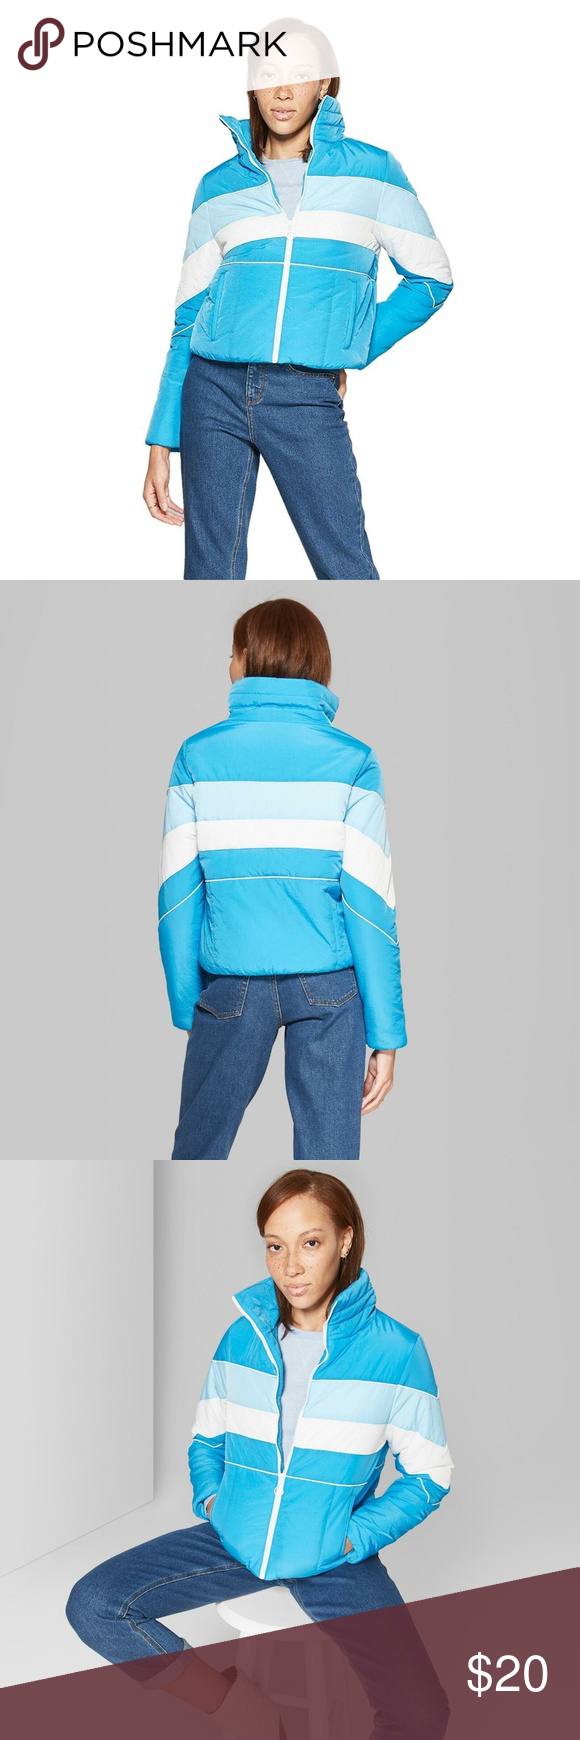 Nwt Wild Fable Color Blocked Puffer Jacket Xs Blue Puffer Jacket Long Jackets Puffer Jackets [ 1740 x 580 Pixel ]